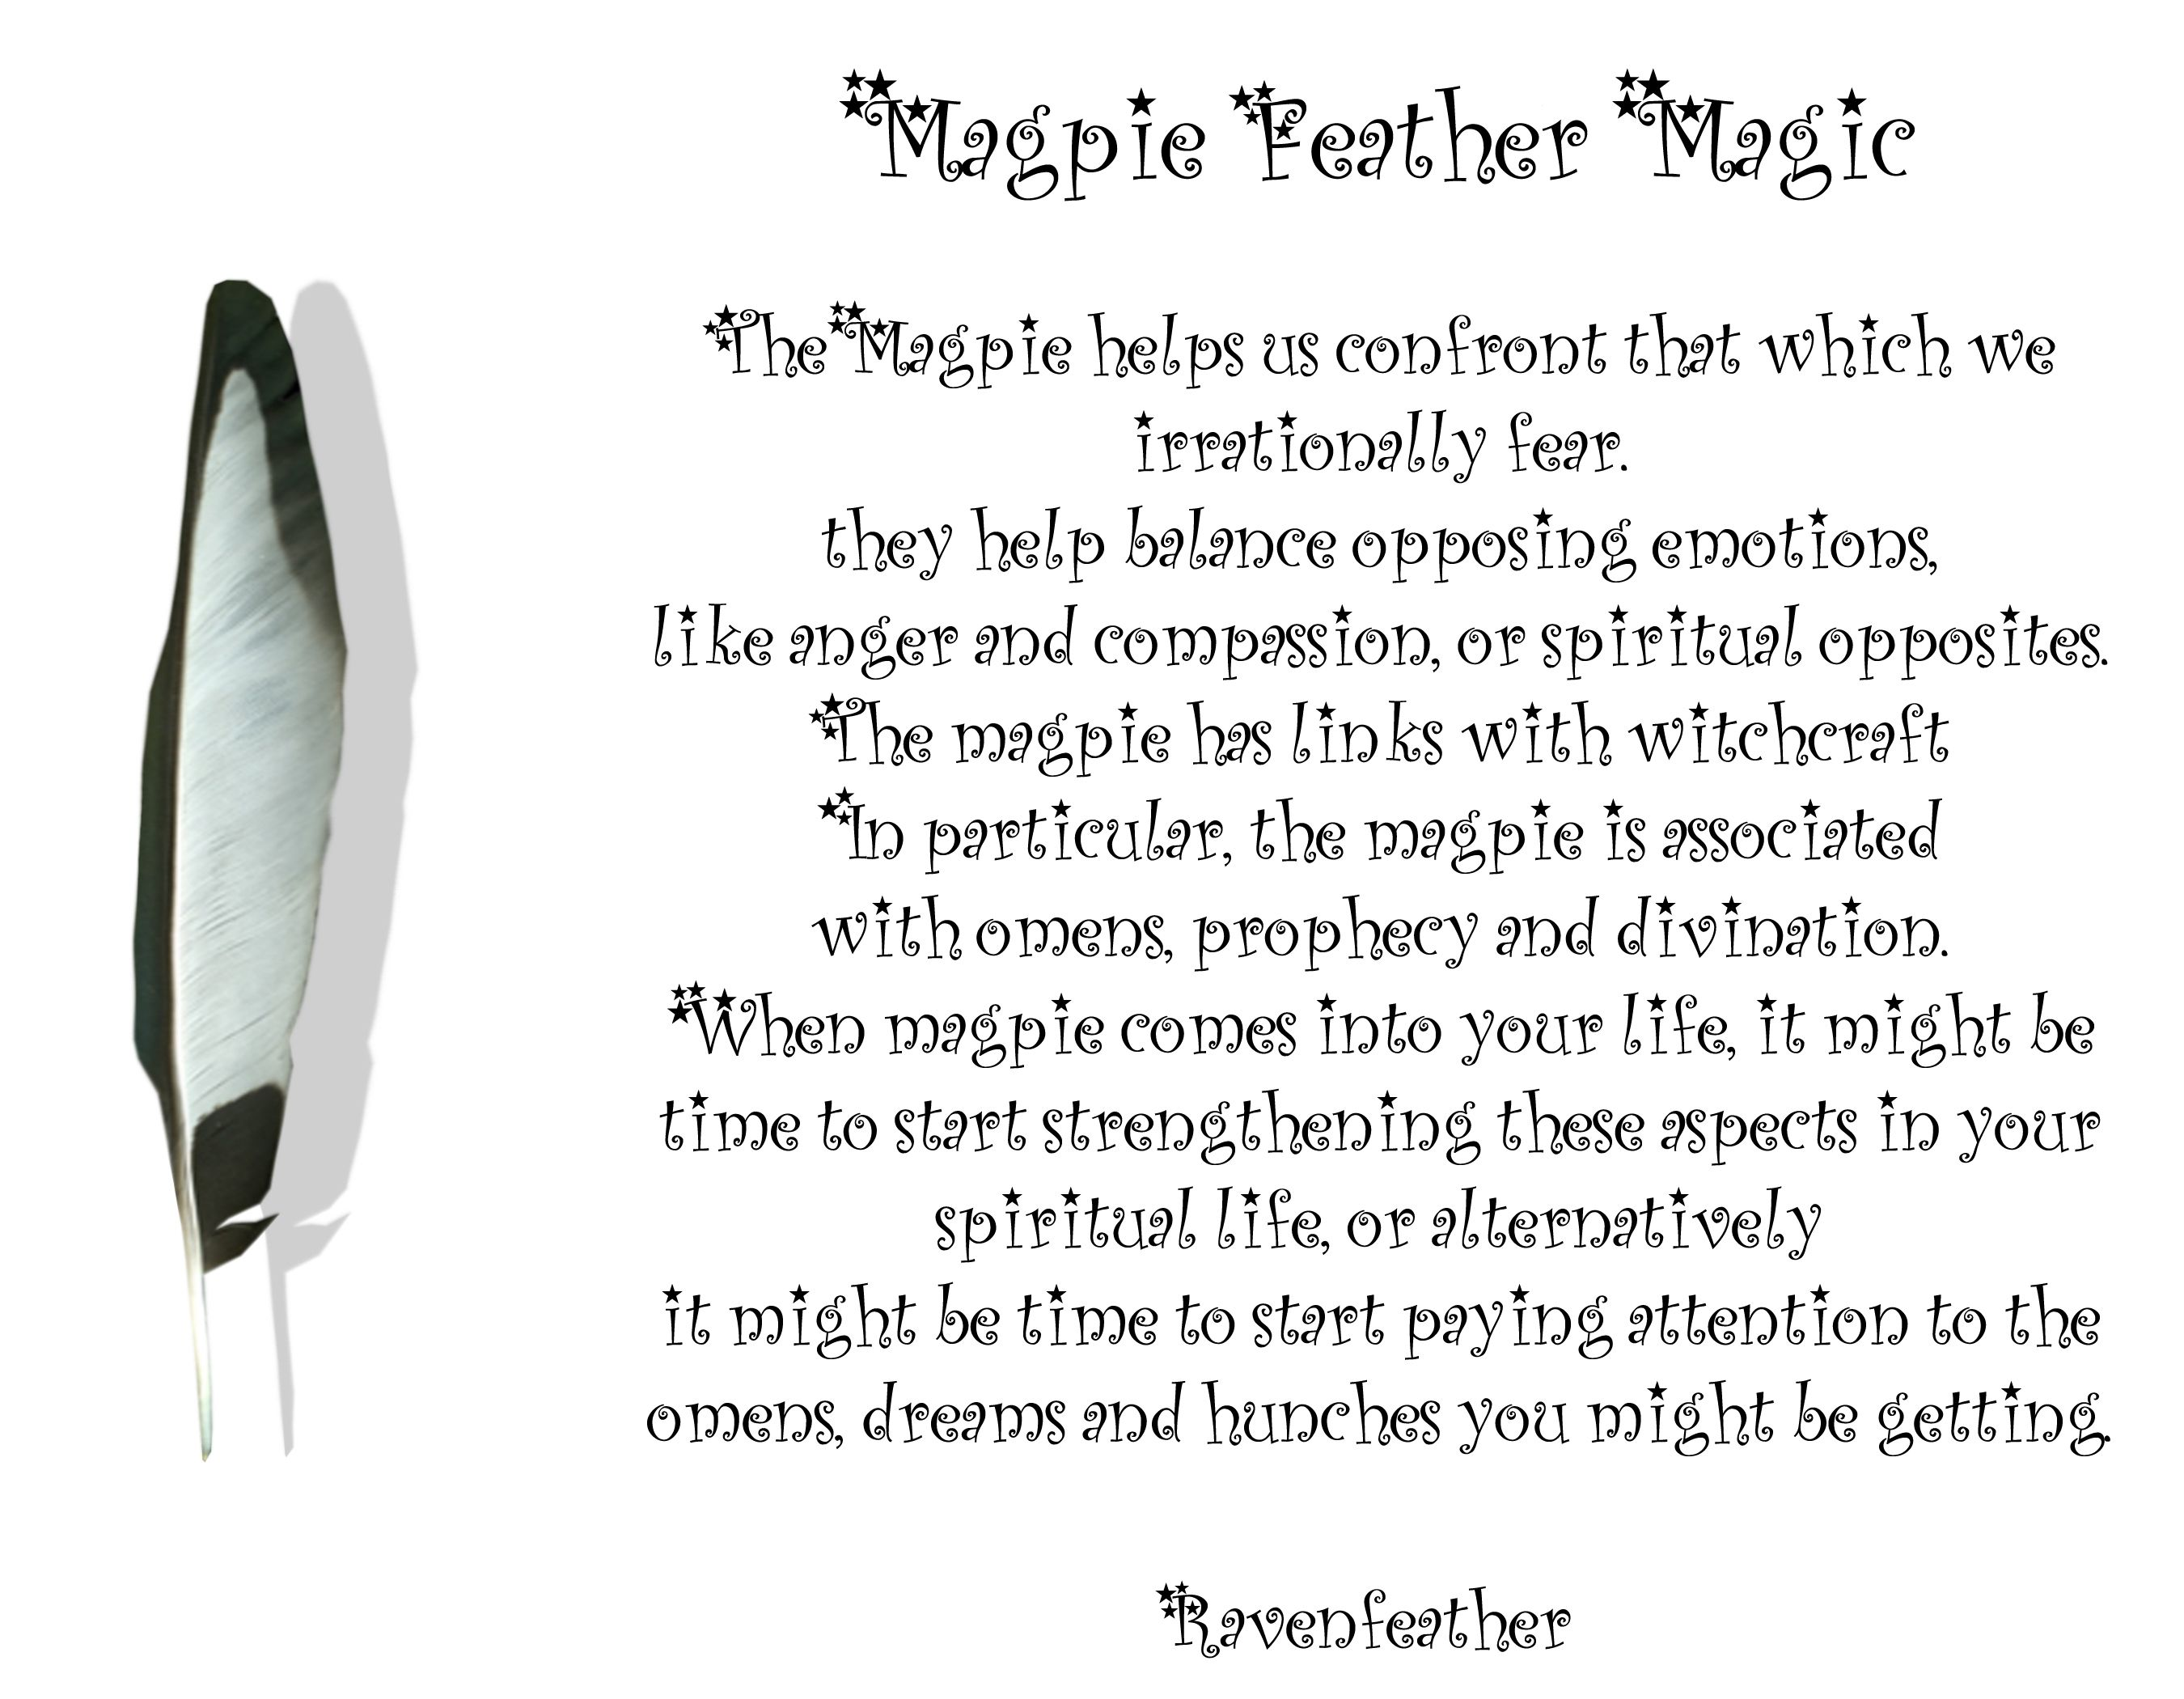 New Version Of Magpie Feather Magic Please Check Your Local And Federal Guidelines For Feather Collection And Poss Feather Magic Feather Meaning Magpie Tattoo